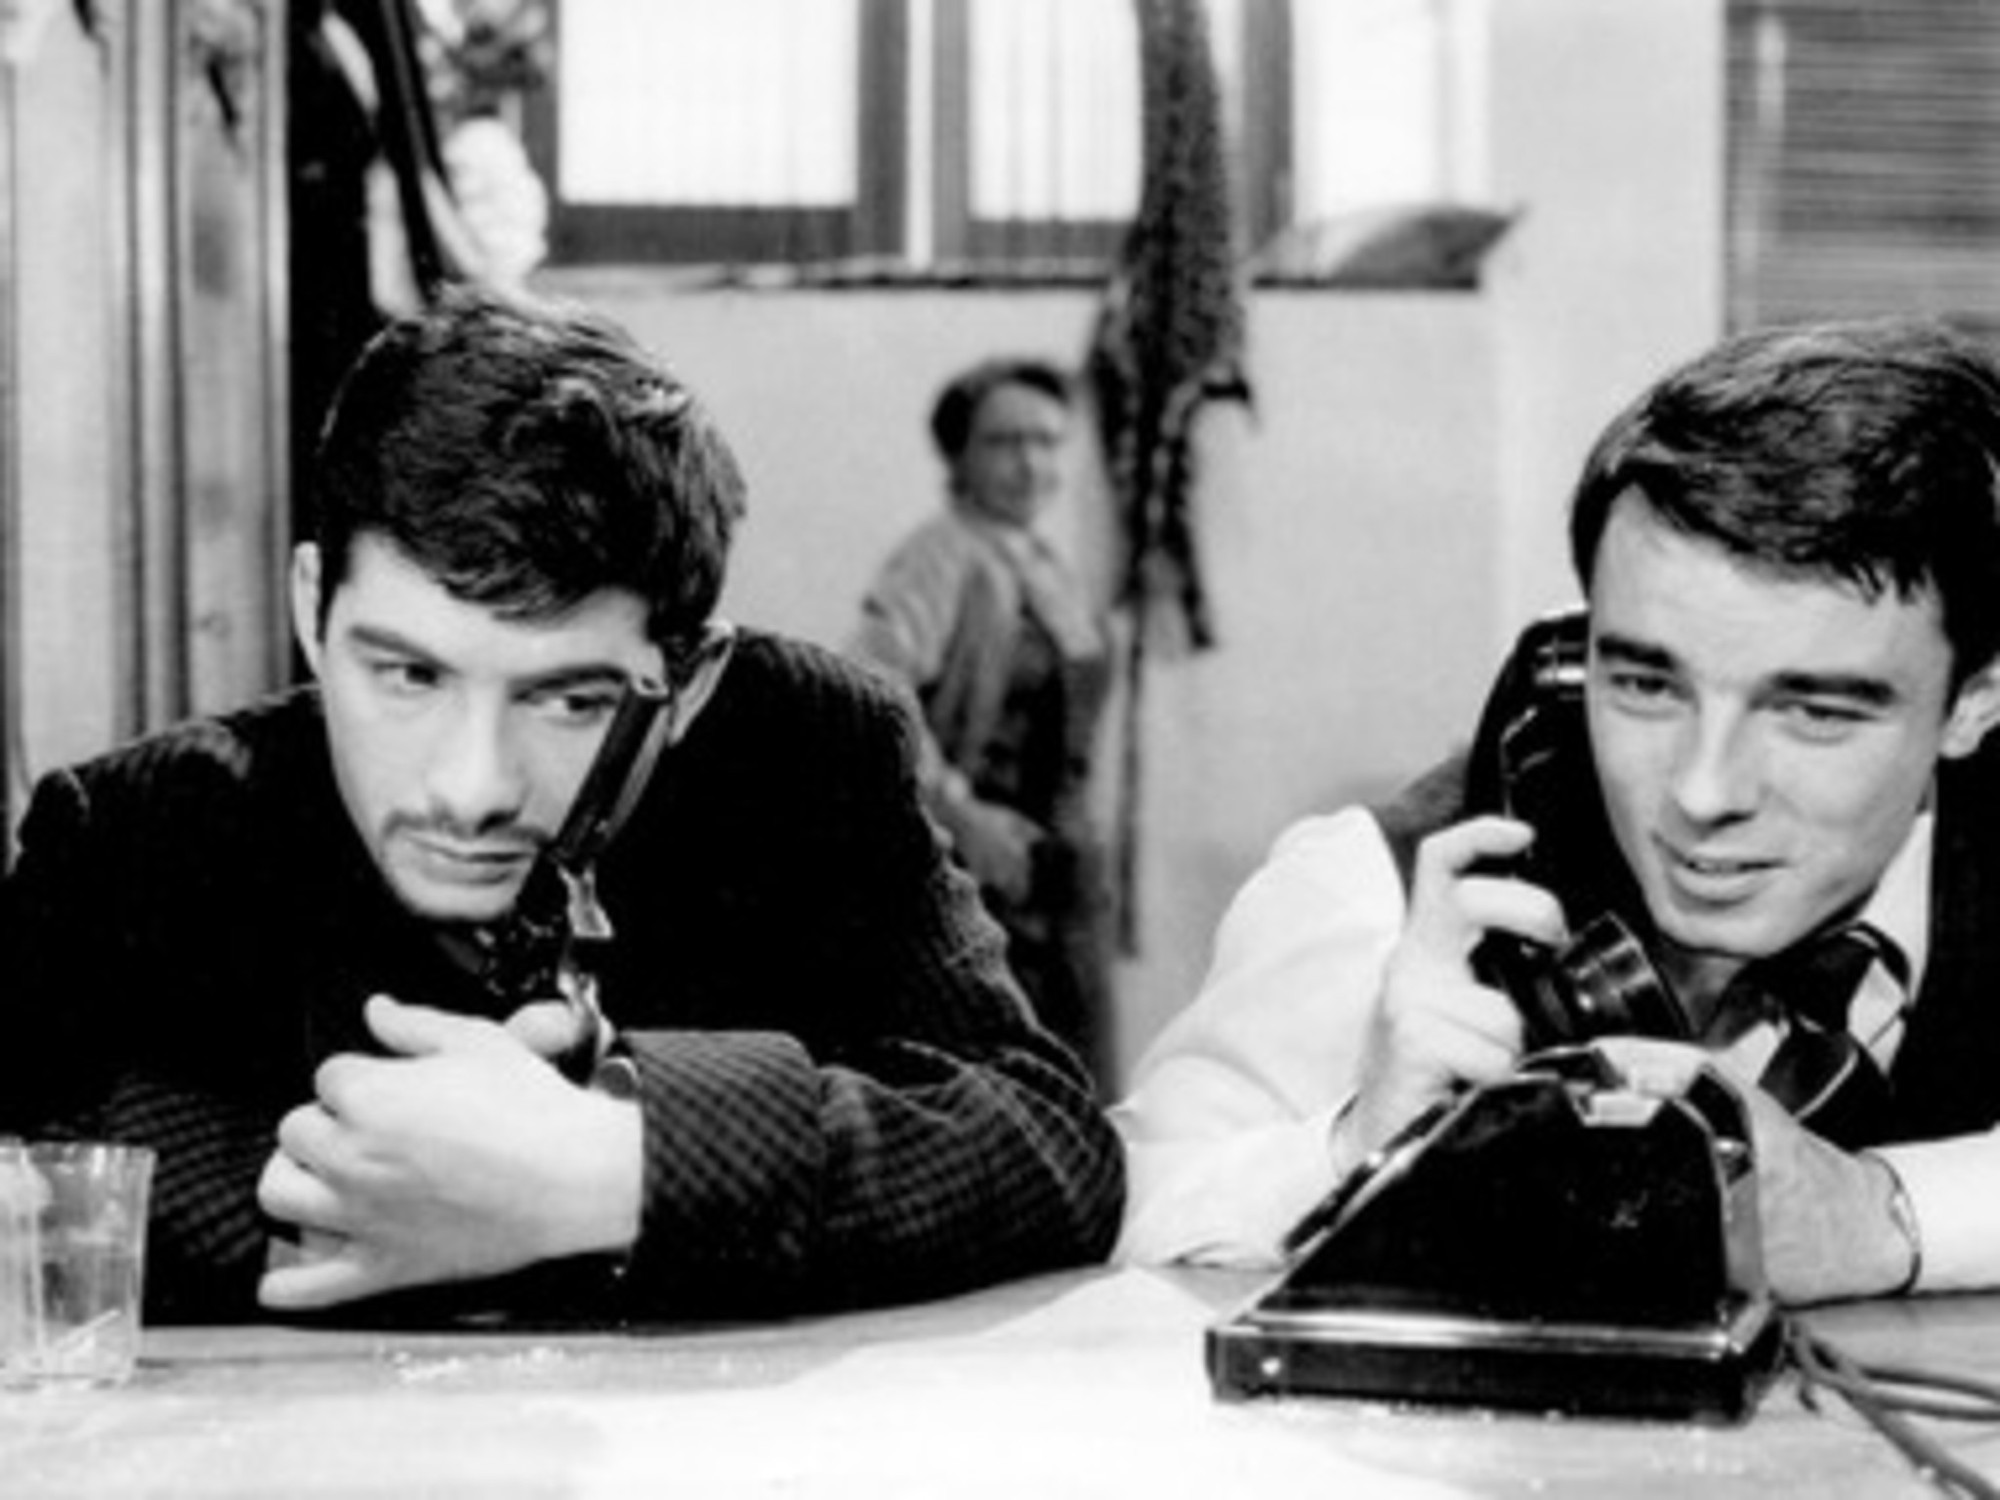 Les cousins (The Cousins). 1959. France. Directed by Claude Chabrol